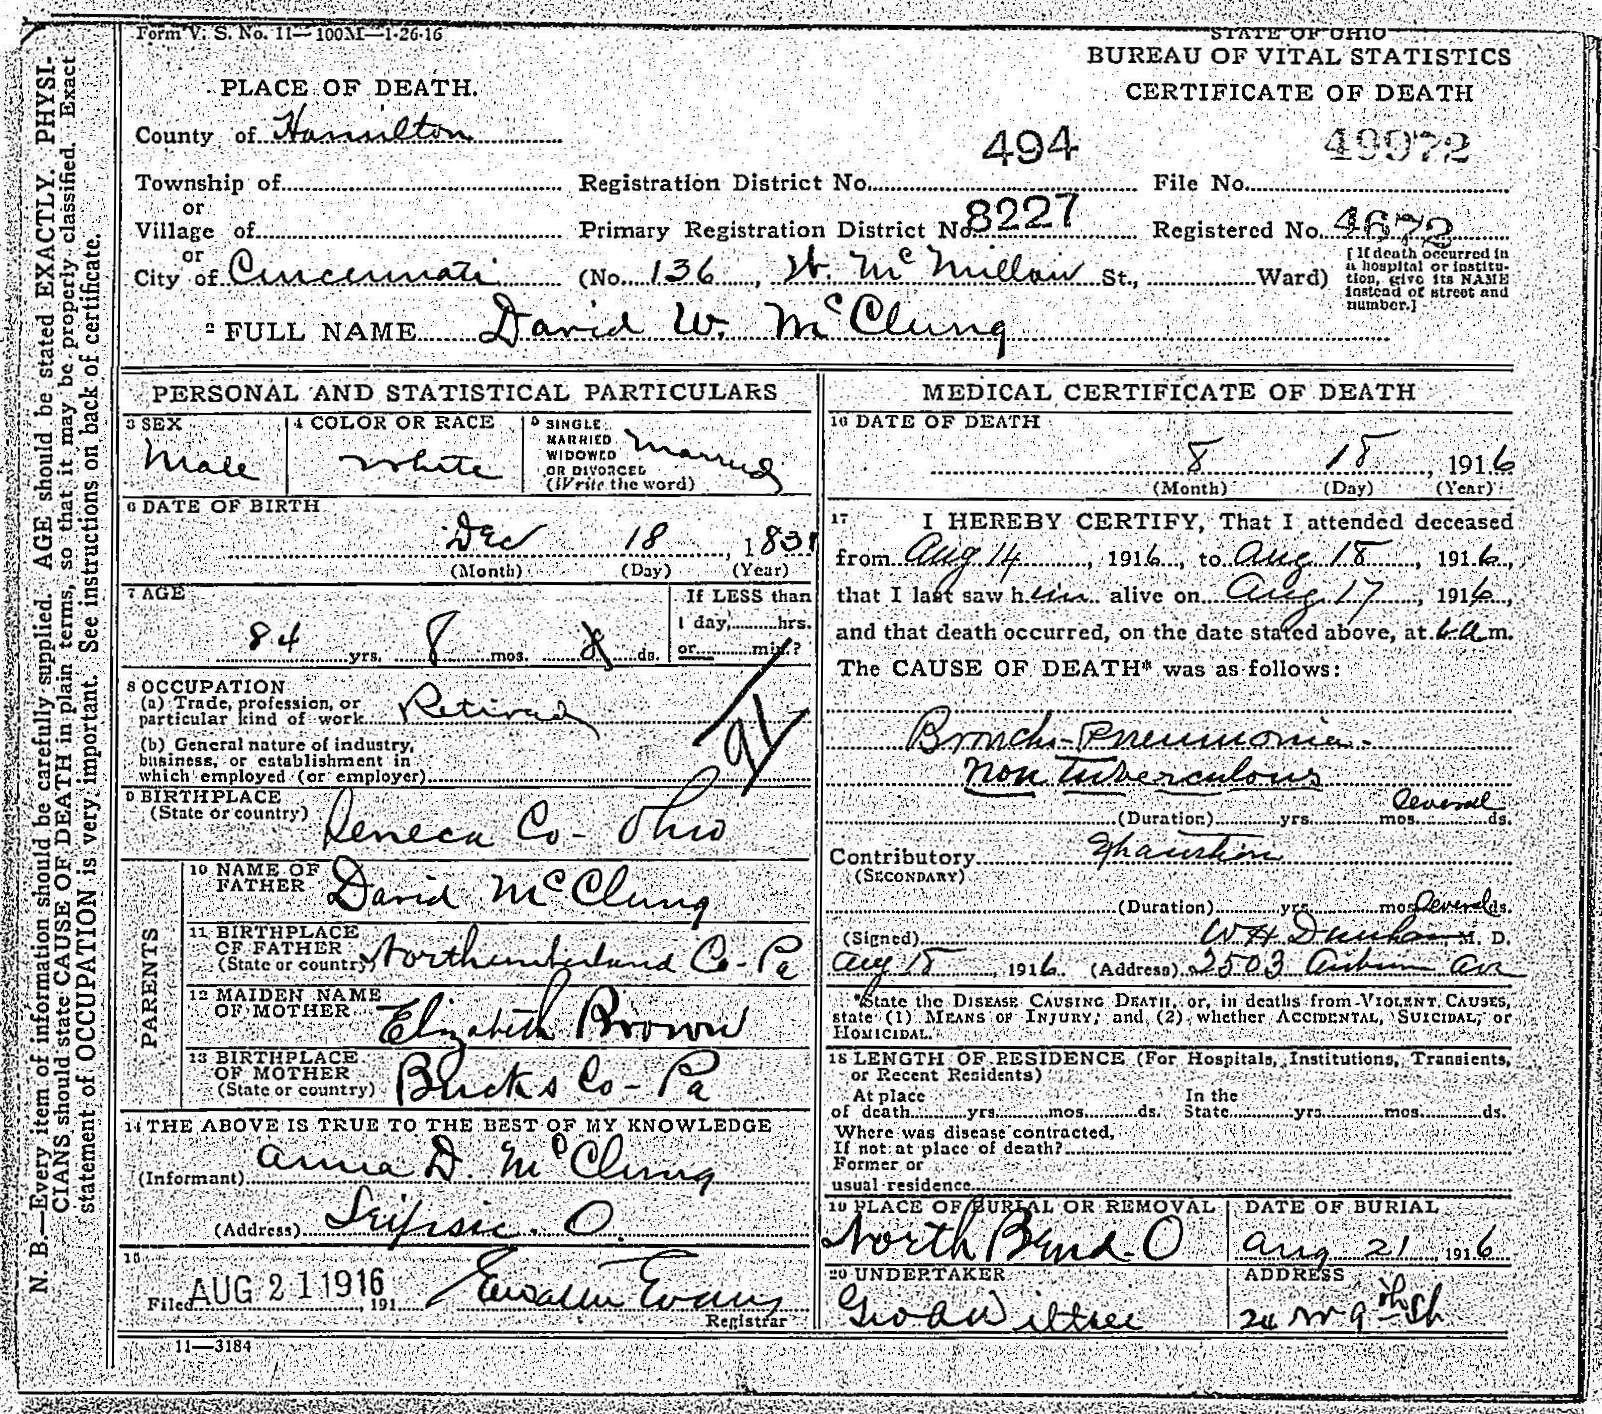 David waddle mcclung 1831 1916 find a grave memorial david waddle mcclung in ohio death certificate aiddatafo Images